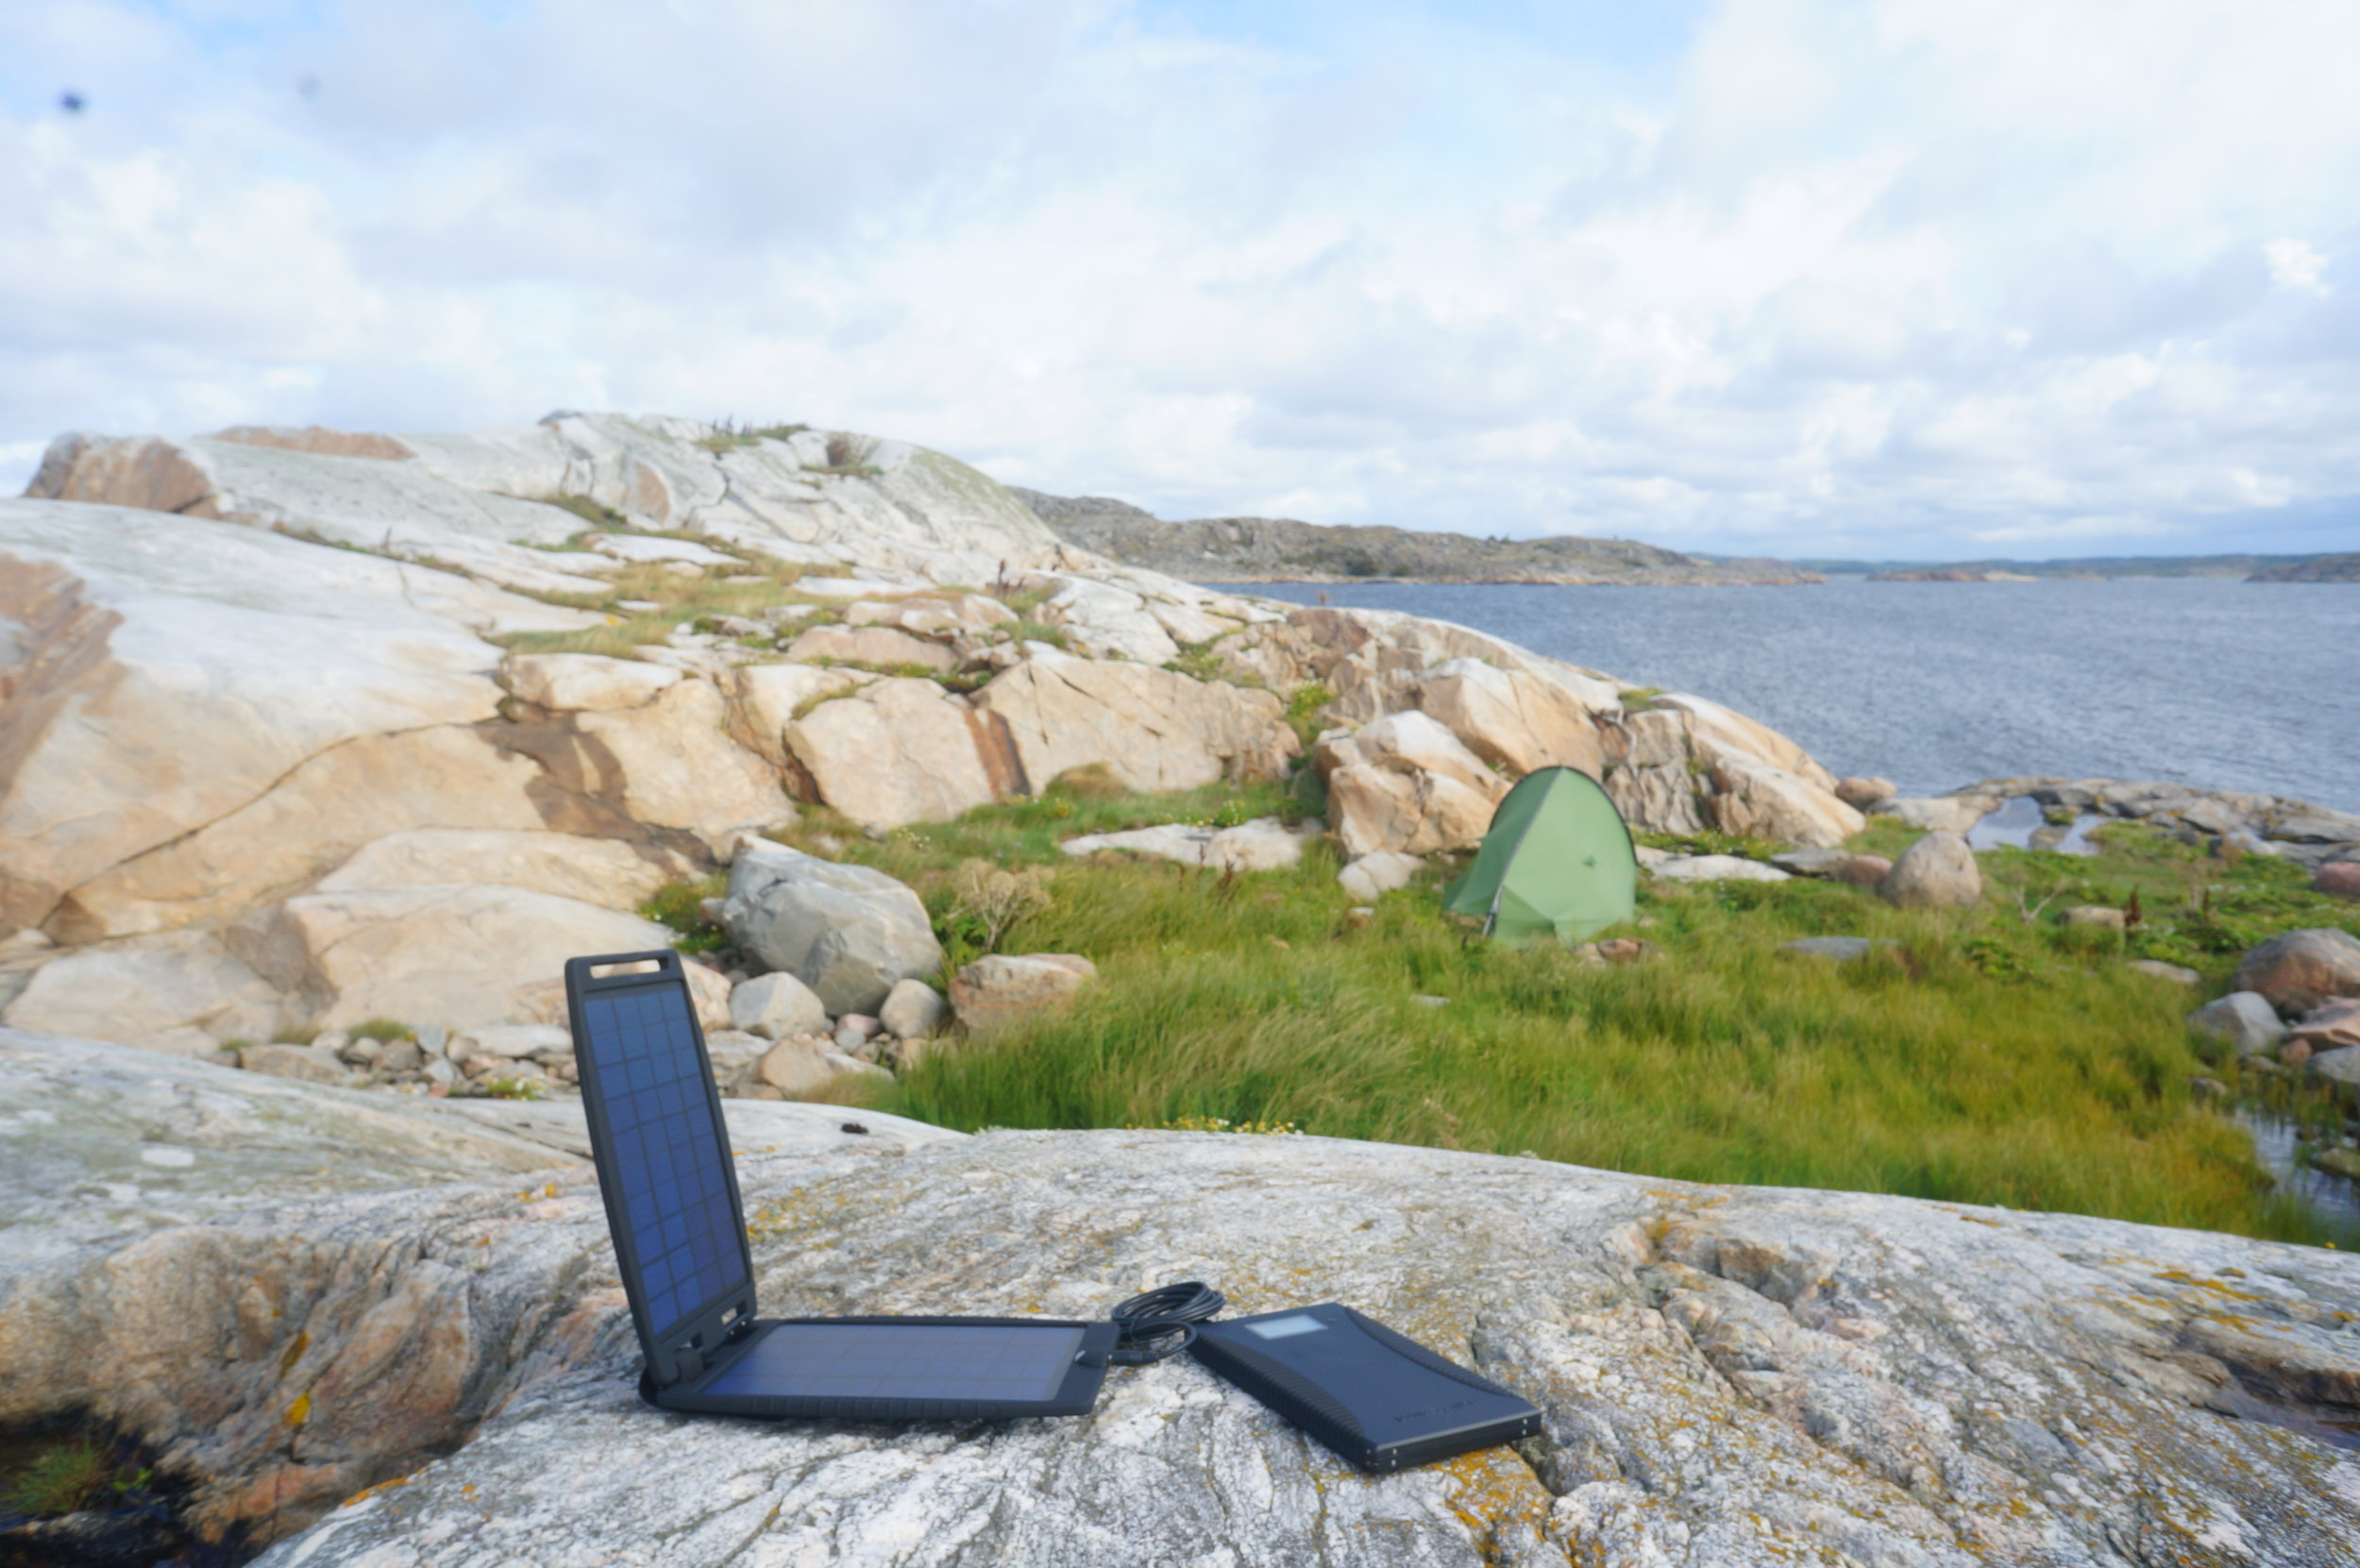 Mobile office and charging system off the coast of West Sweden